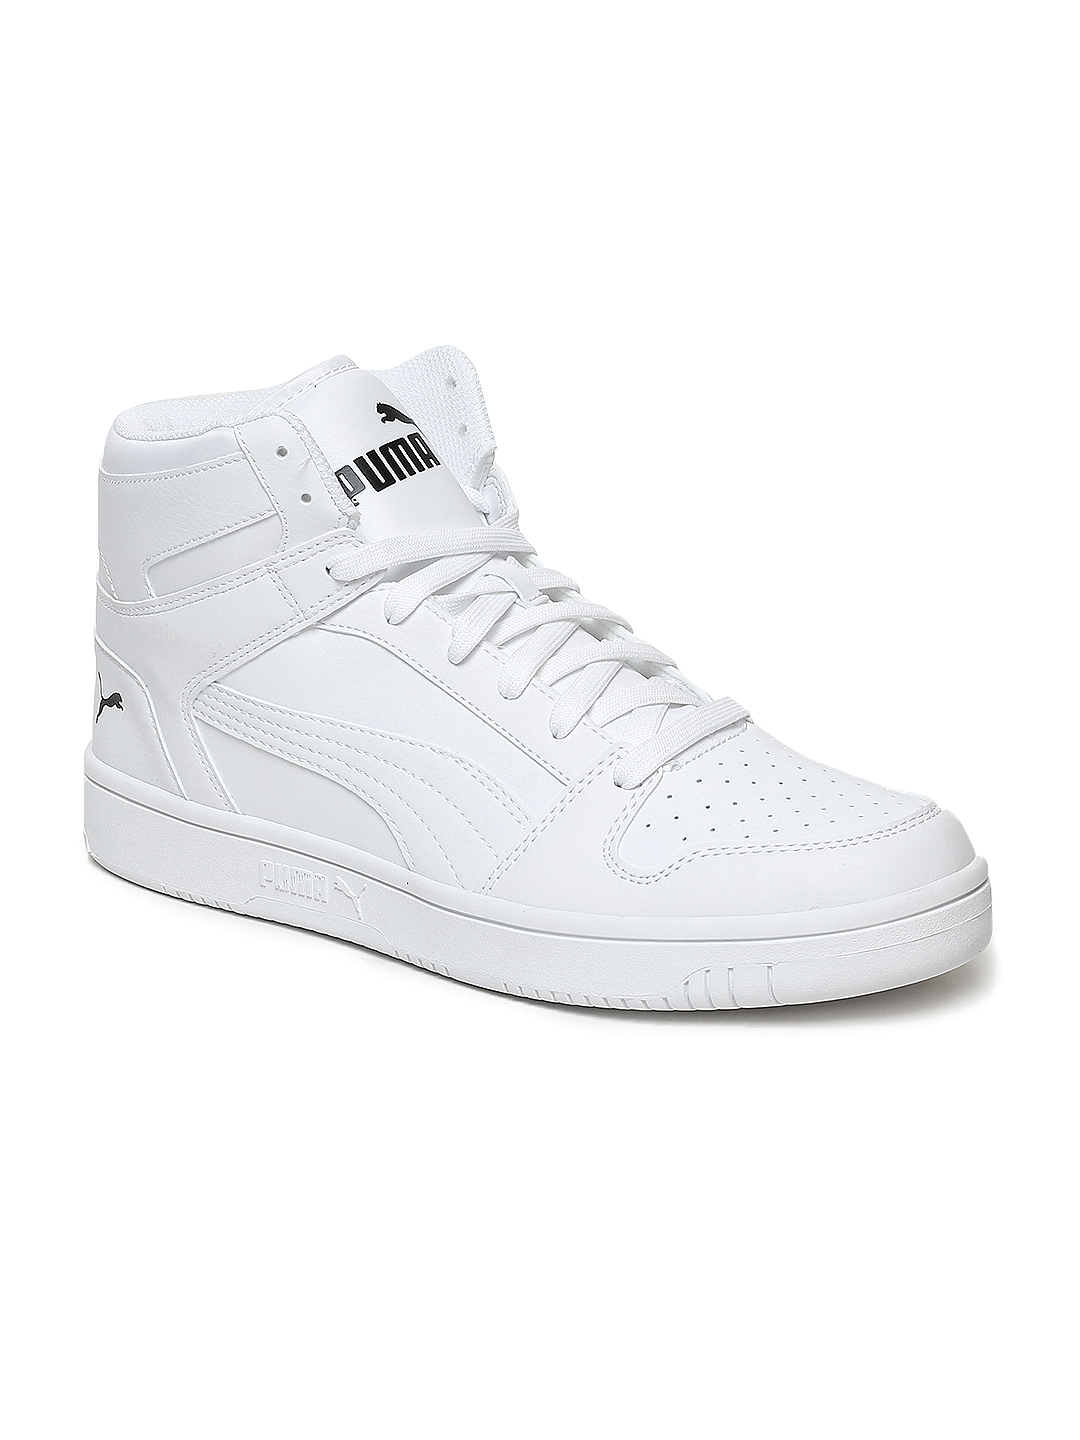 énorme réduction 5a515 88417 Puma Men White Rebound LayUp SL Leather Mid-Top Sneakers